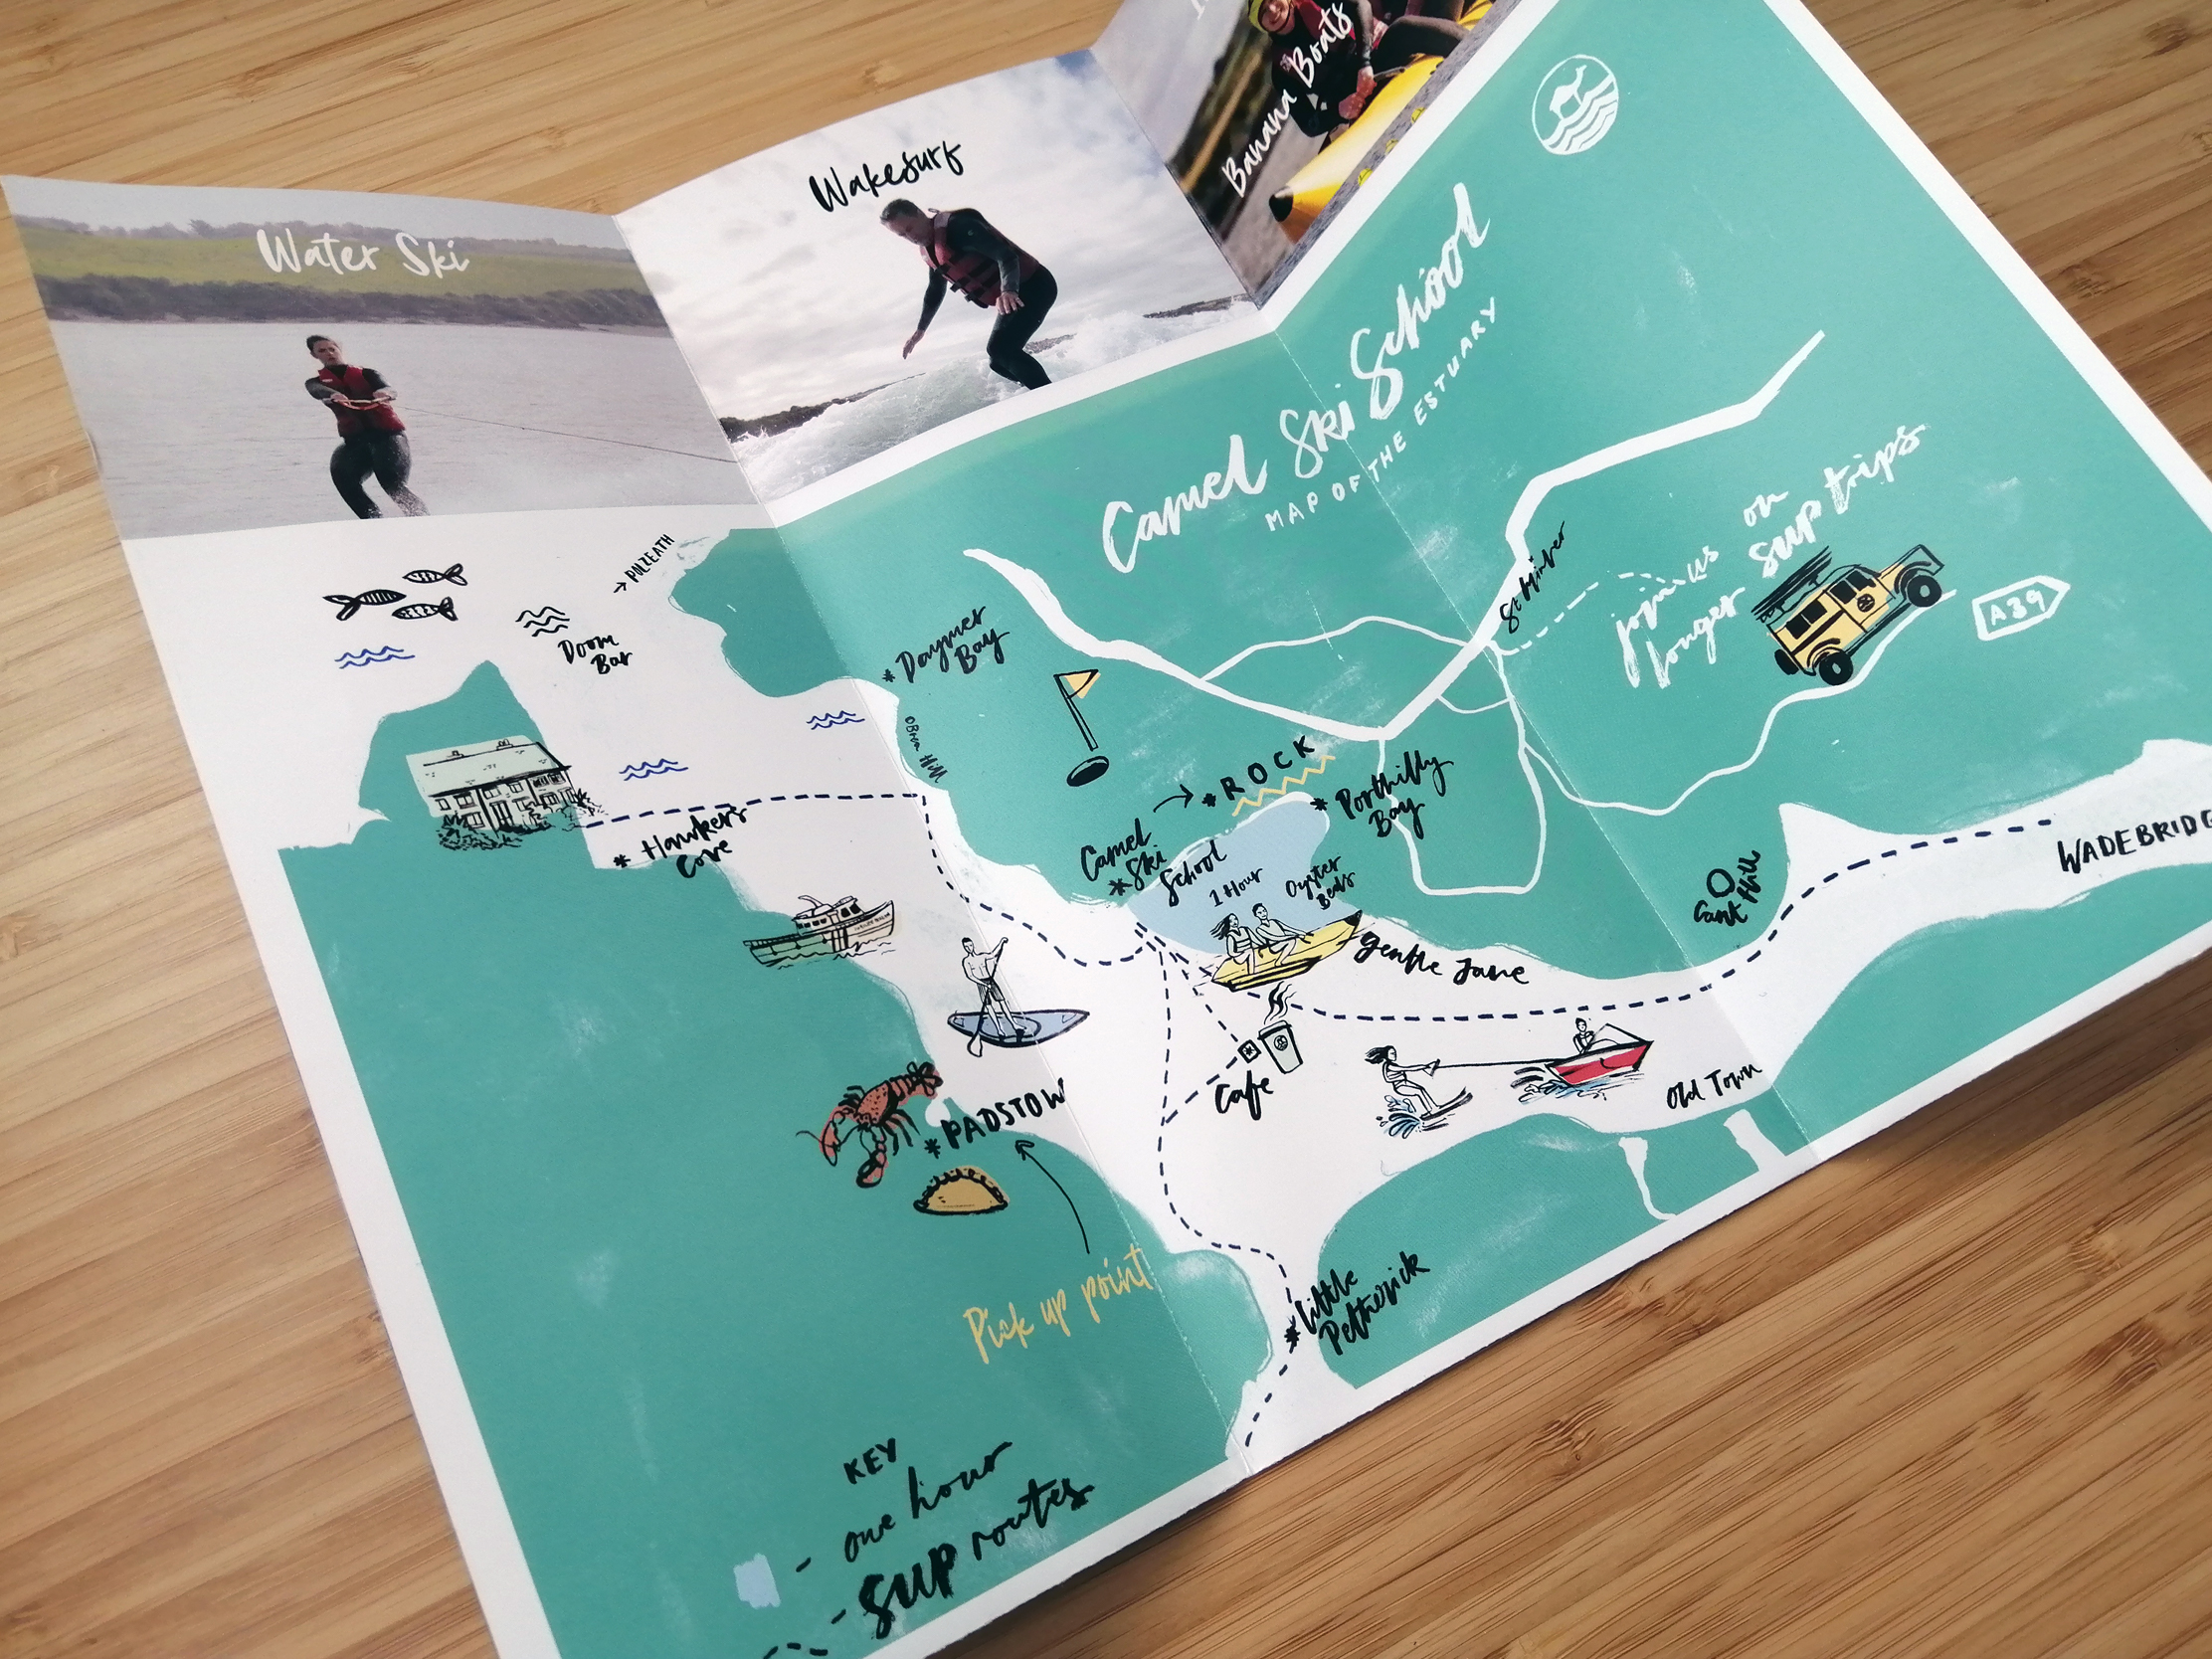 Fold out leaflet for Camel Ski School